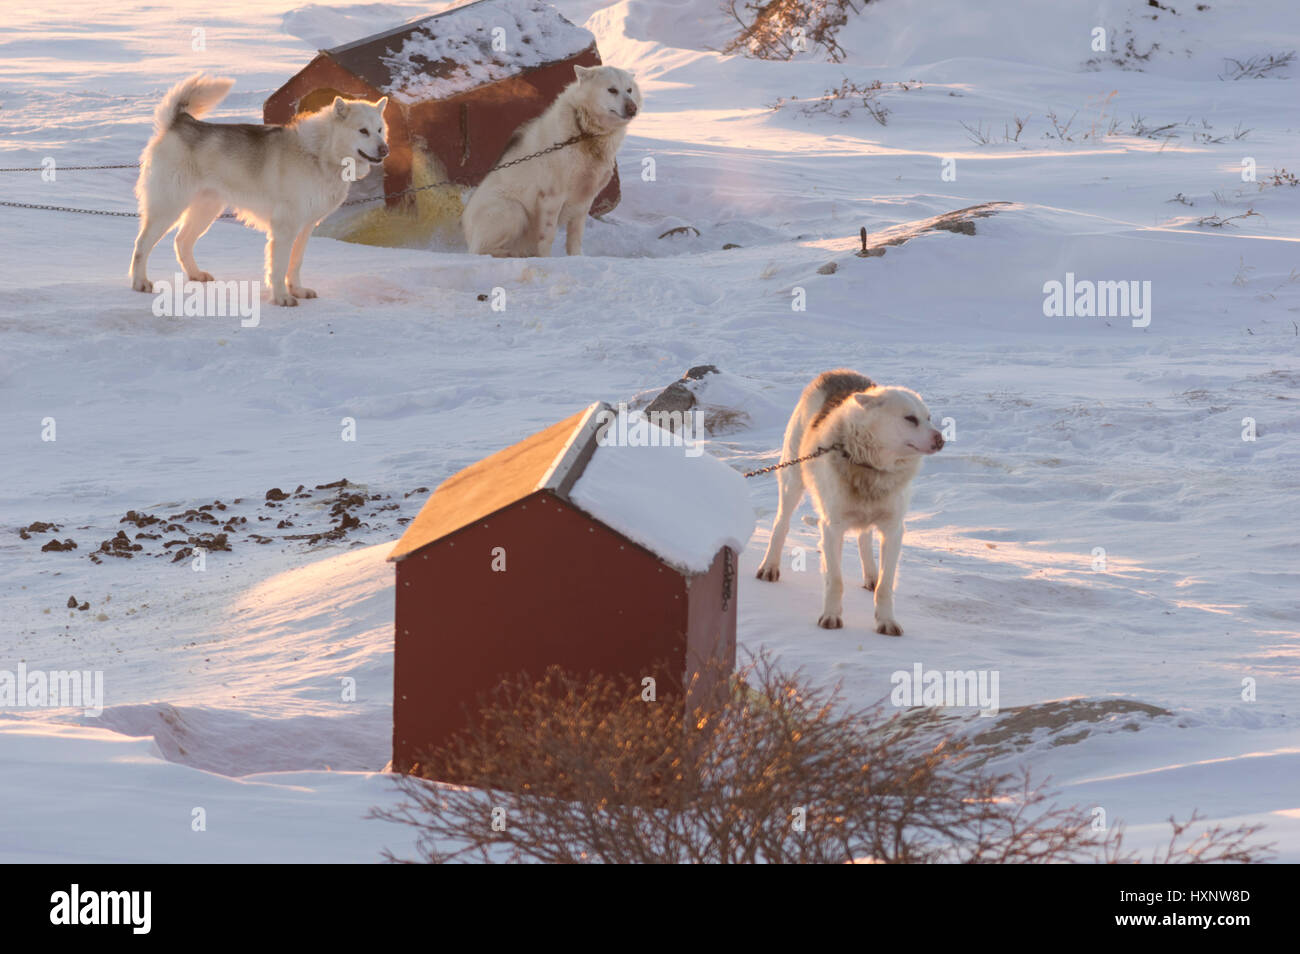 Working Husky dogs in Ilulissat Greenland - Stock Image